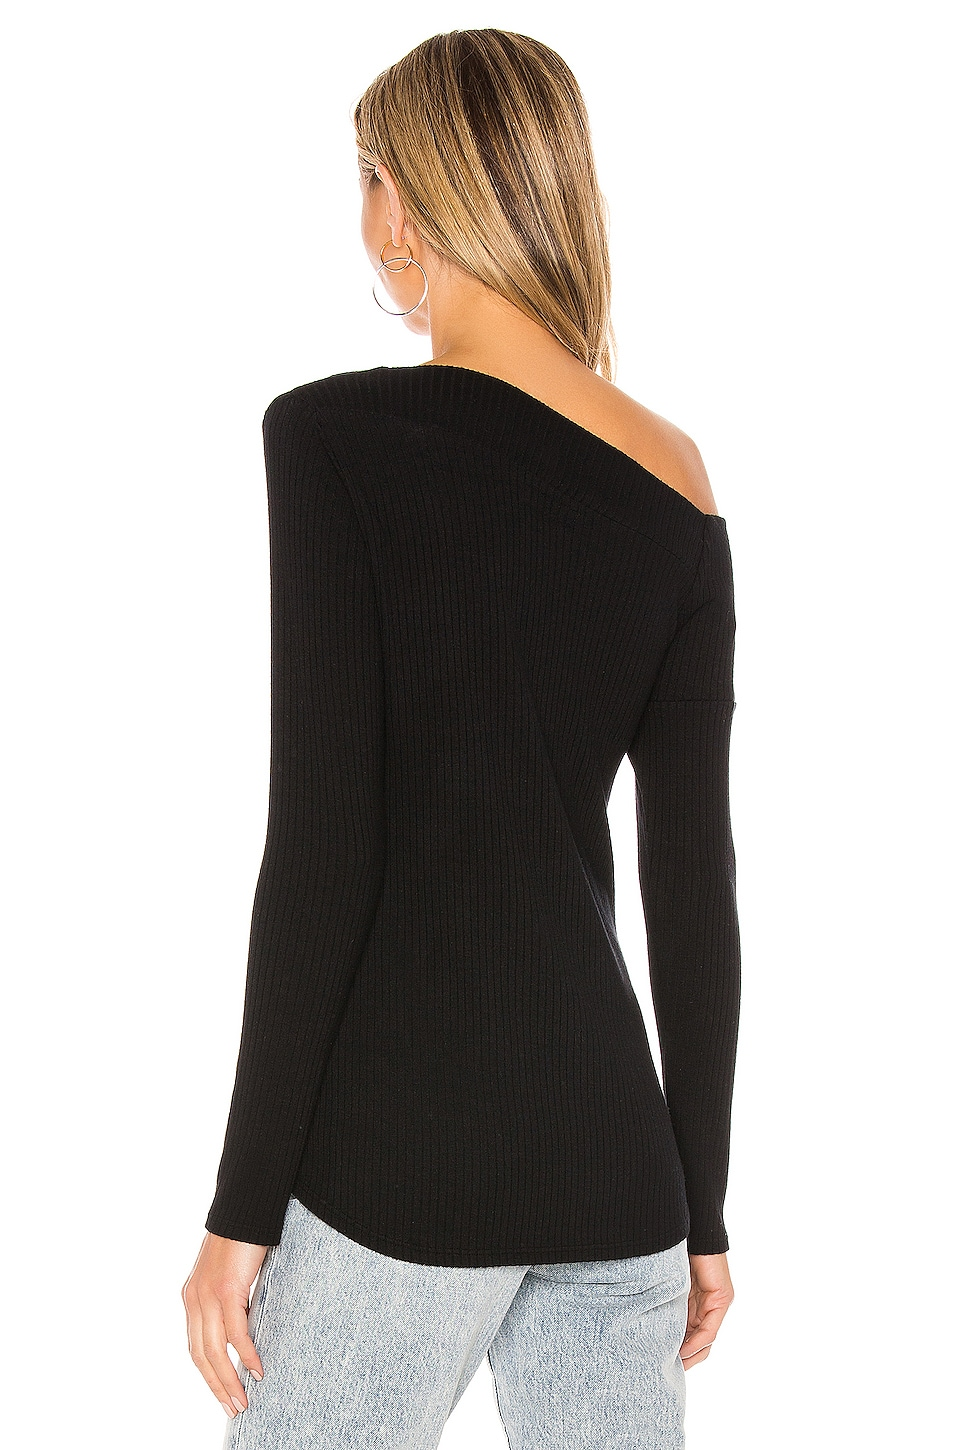 Maples Long Sleeve Top, view 3, click to view large image.